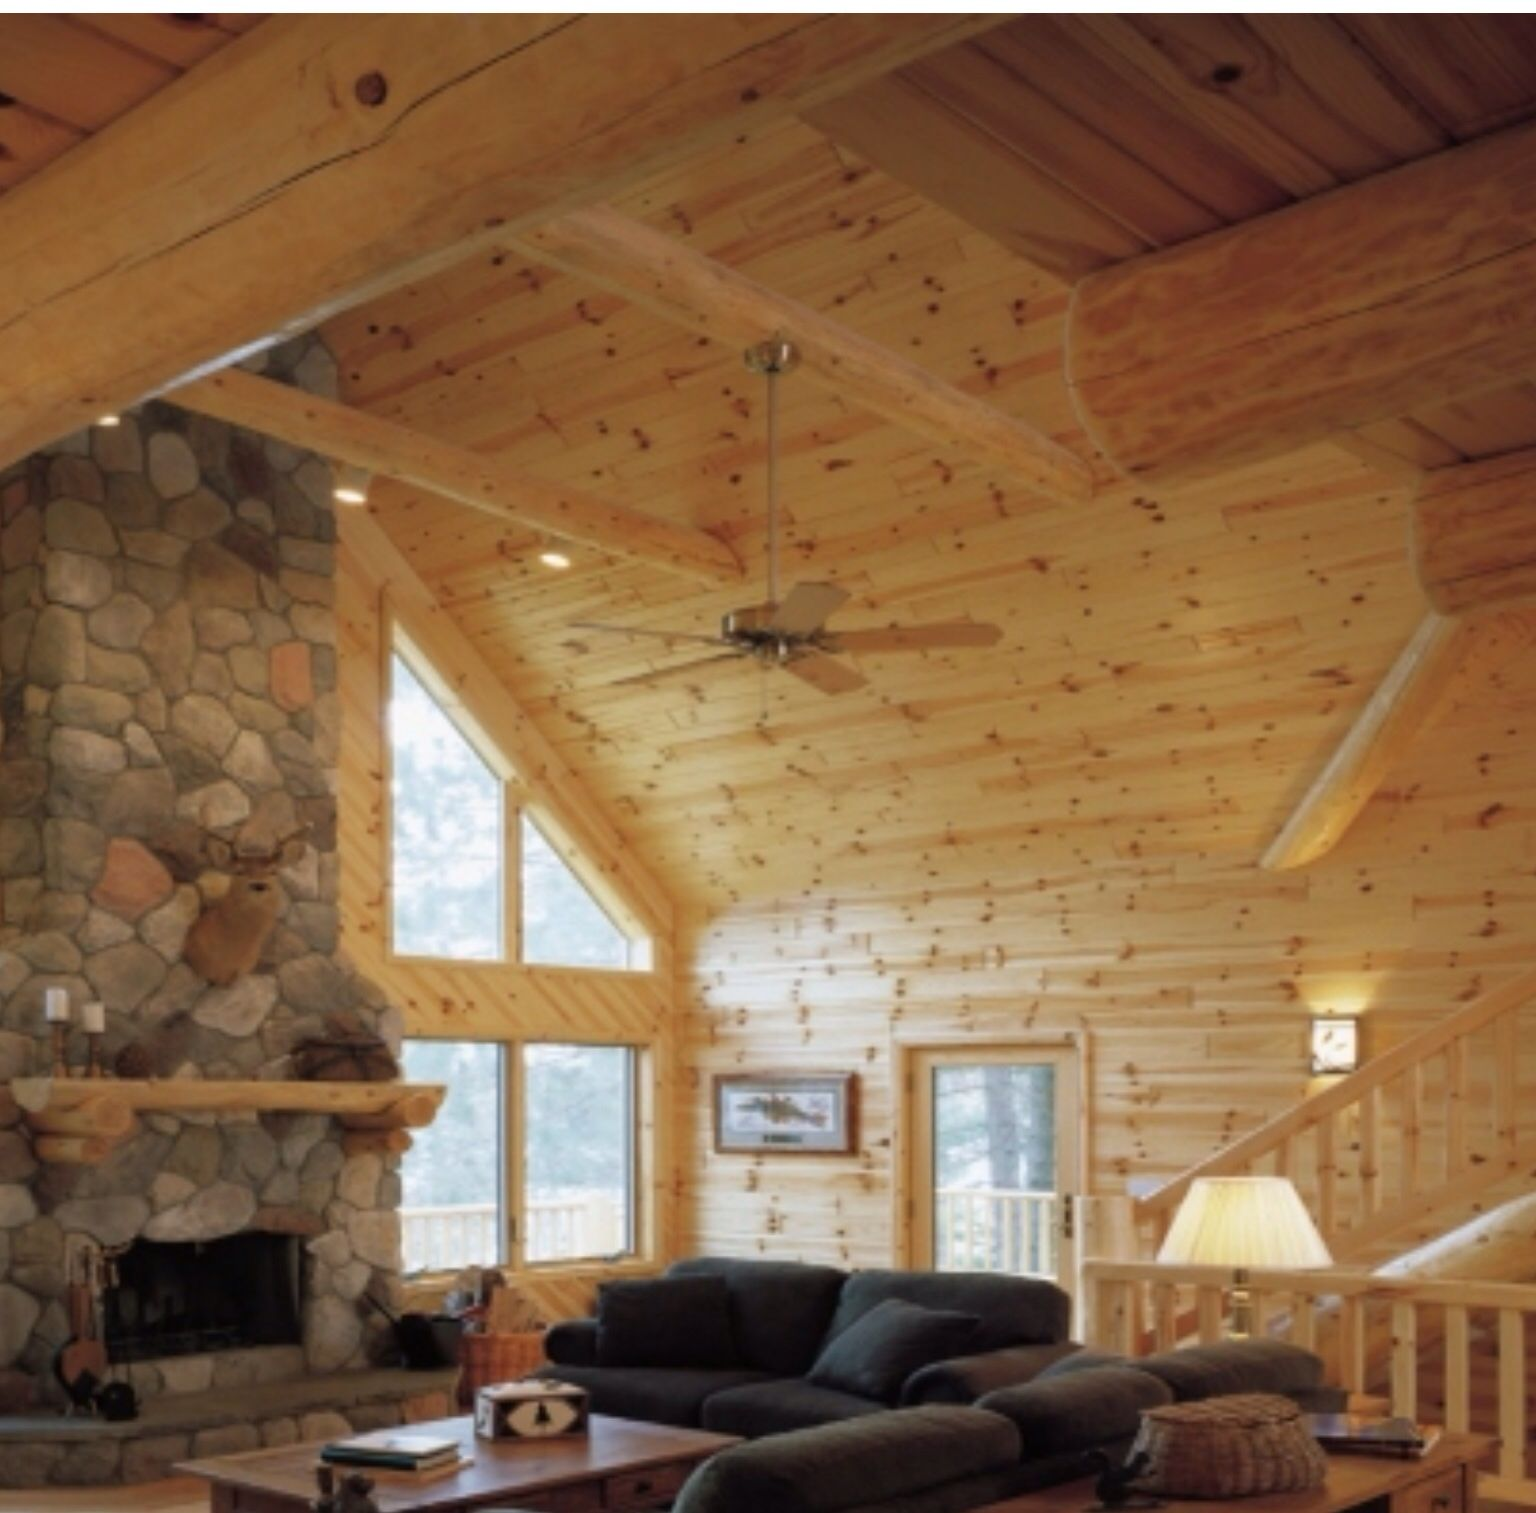 Knotty pine walls and ceiling